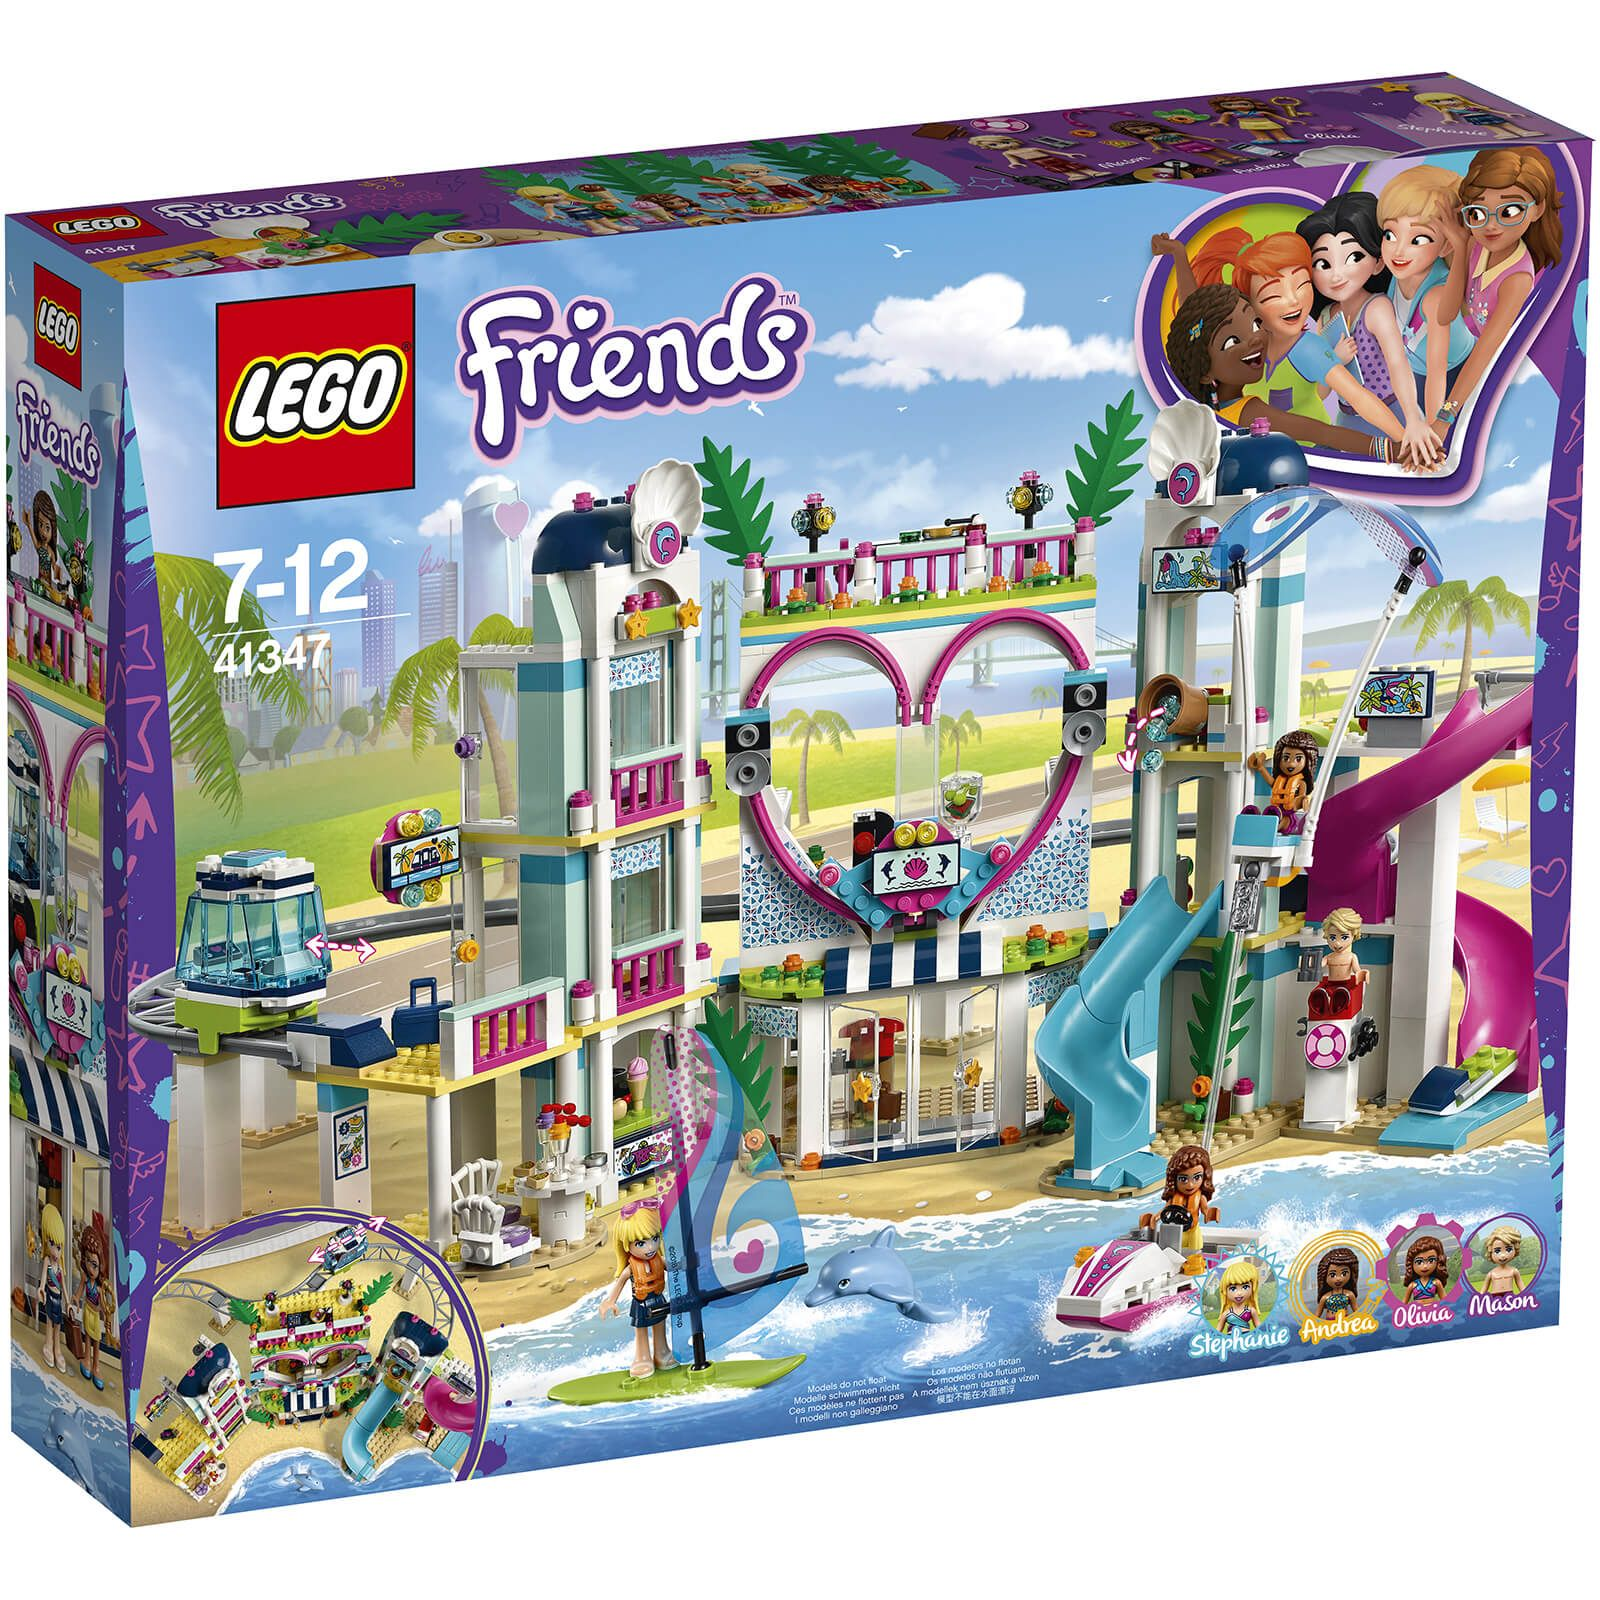 Retired New in Sealed Box LEGO 41347 Friends Heartlake City Resort